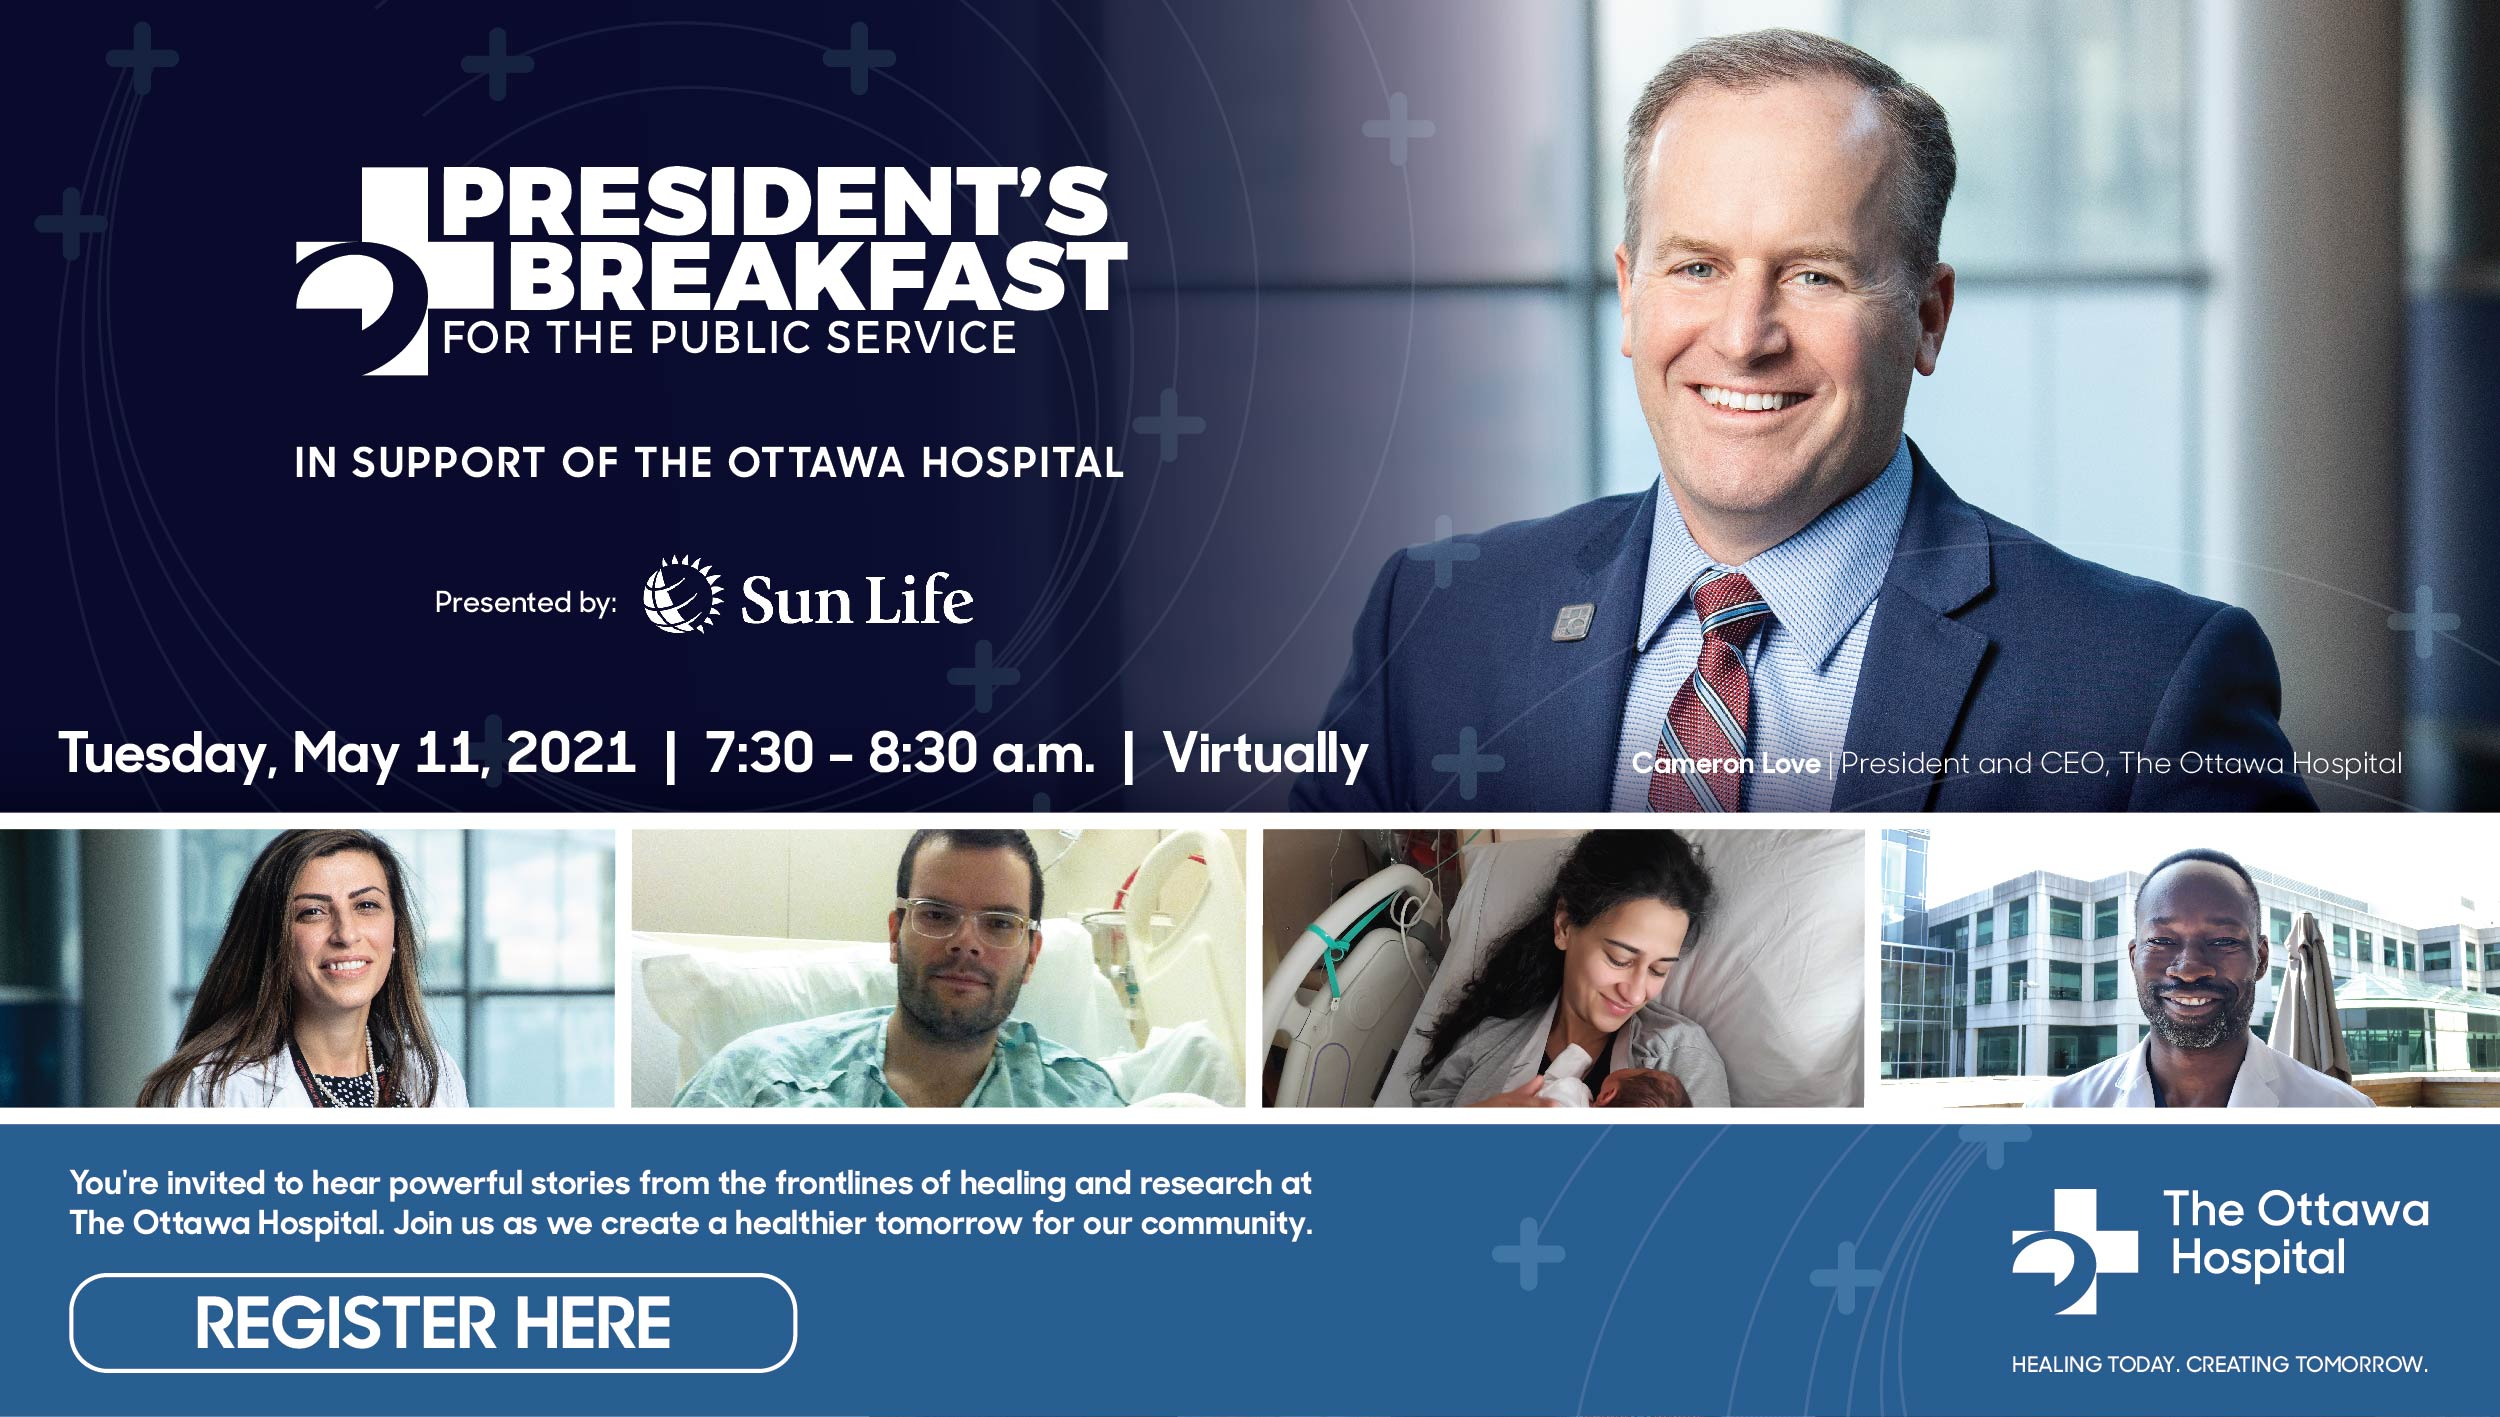 President's Breakfast for the Public Service | May 11, 2021